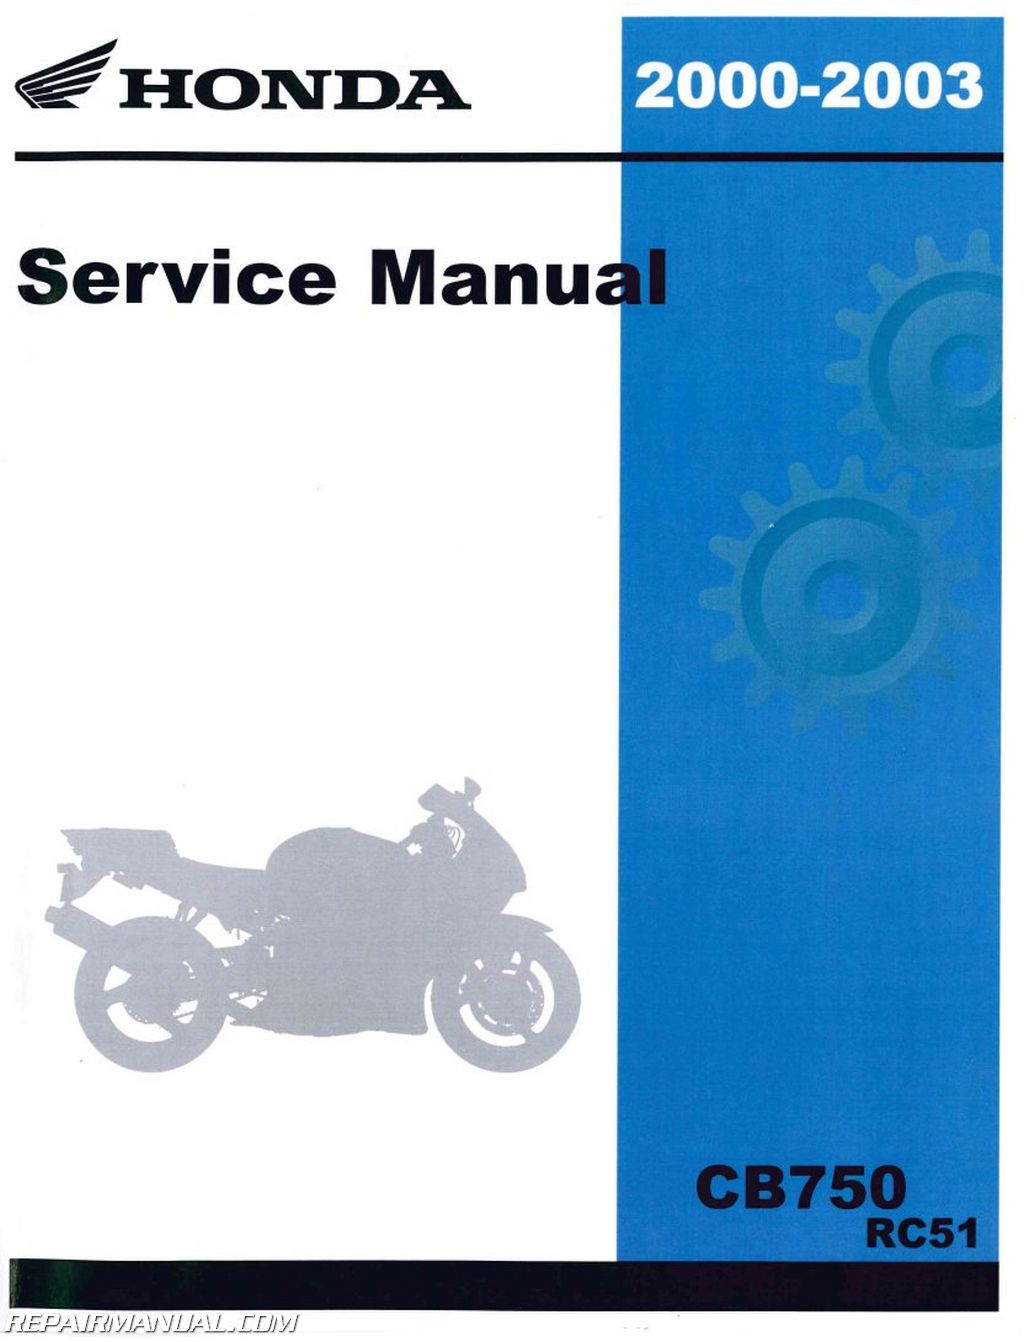 Bmw r100 together with Wiring Diagram For Honda 750 Chopper as well Honda Cb550 Wiring Diagram Rebel 250 furthermore 20543 Revised Wiring Diagram furthermore T23112924 Firing order 1100 zzr kawasaki. on honda nighthawk cb750 wiring diagram